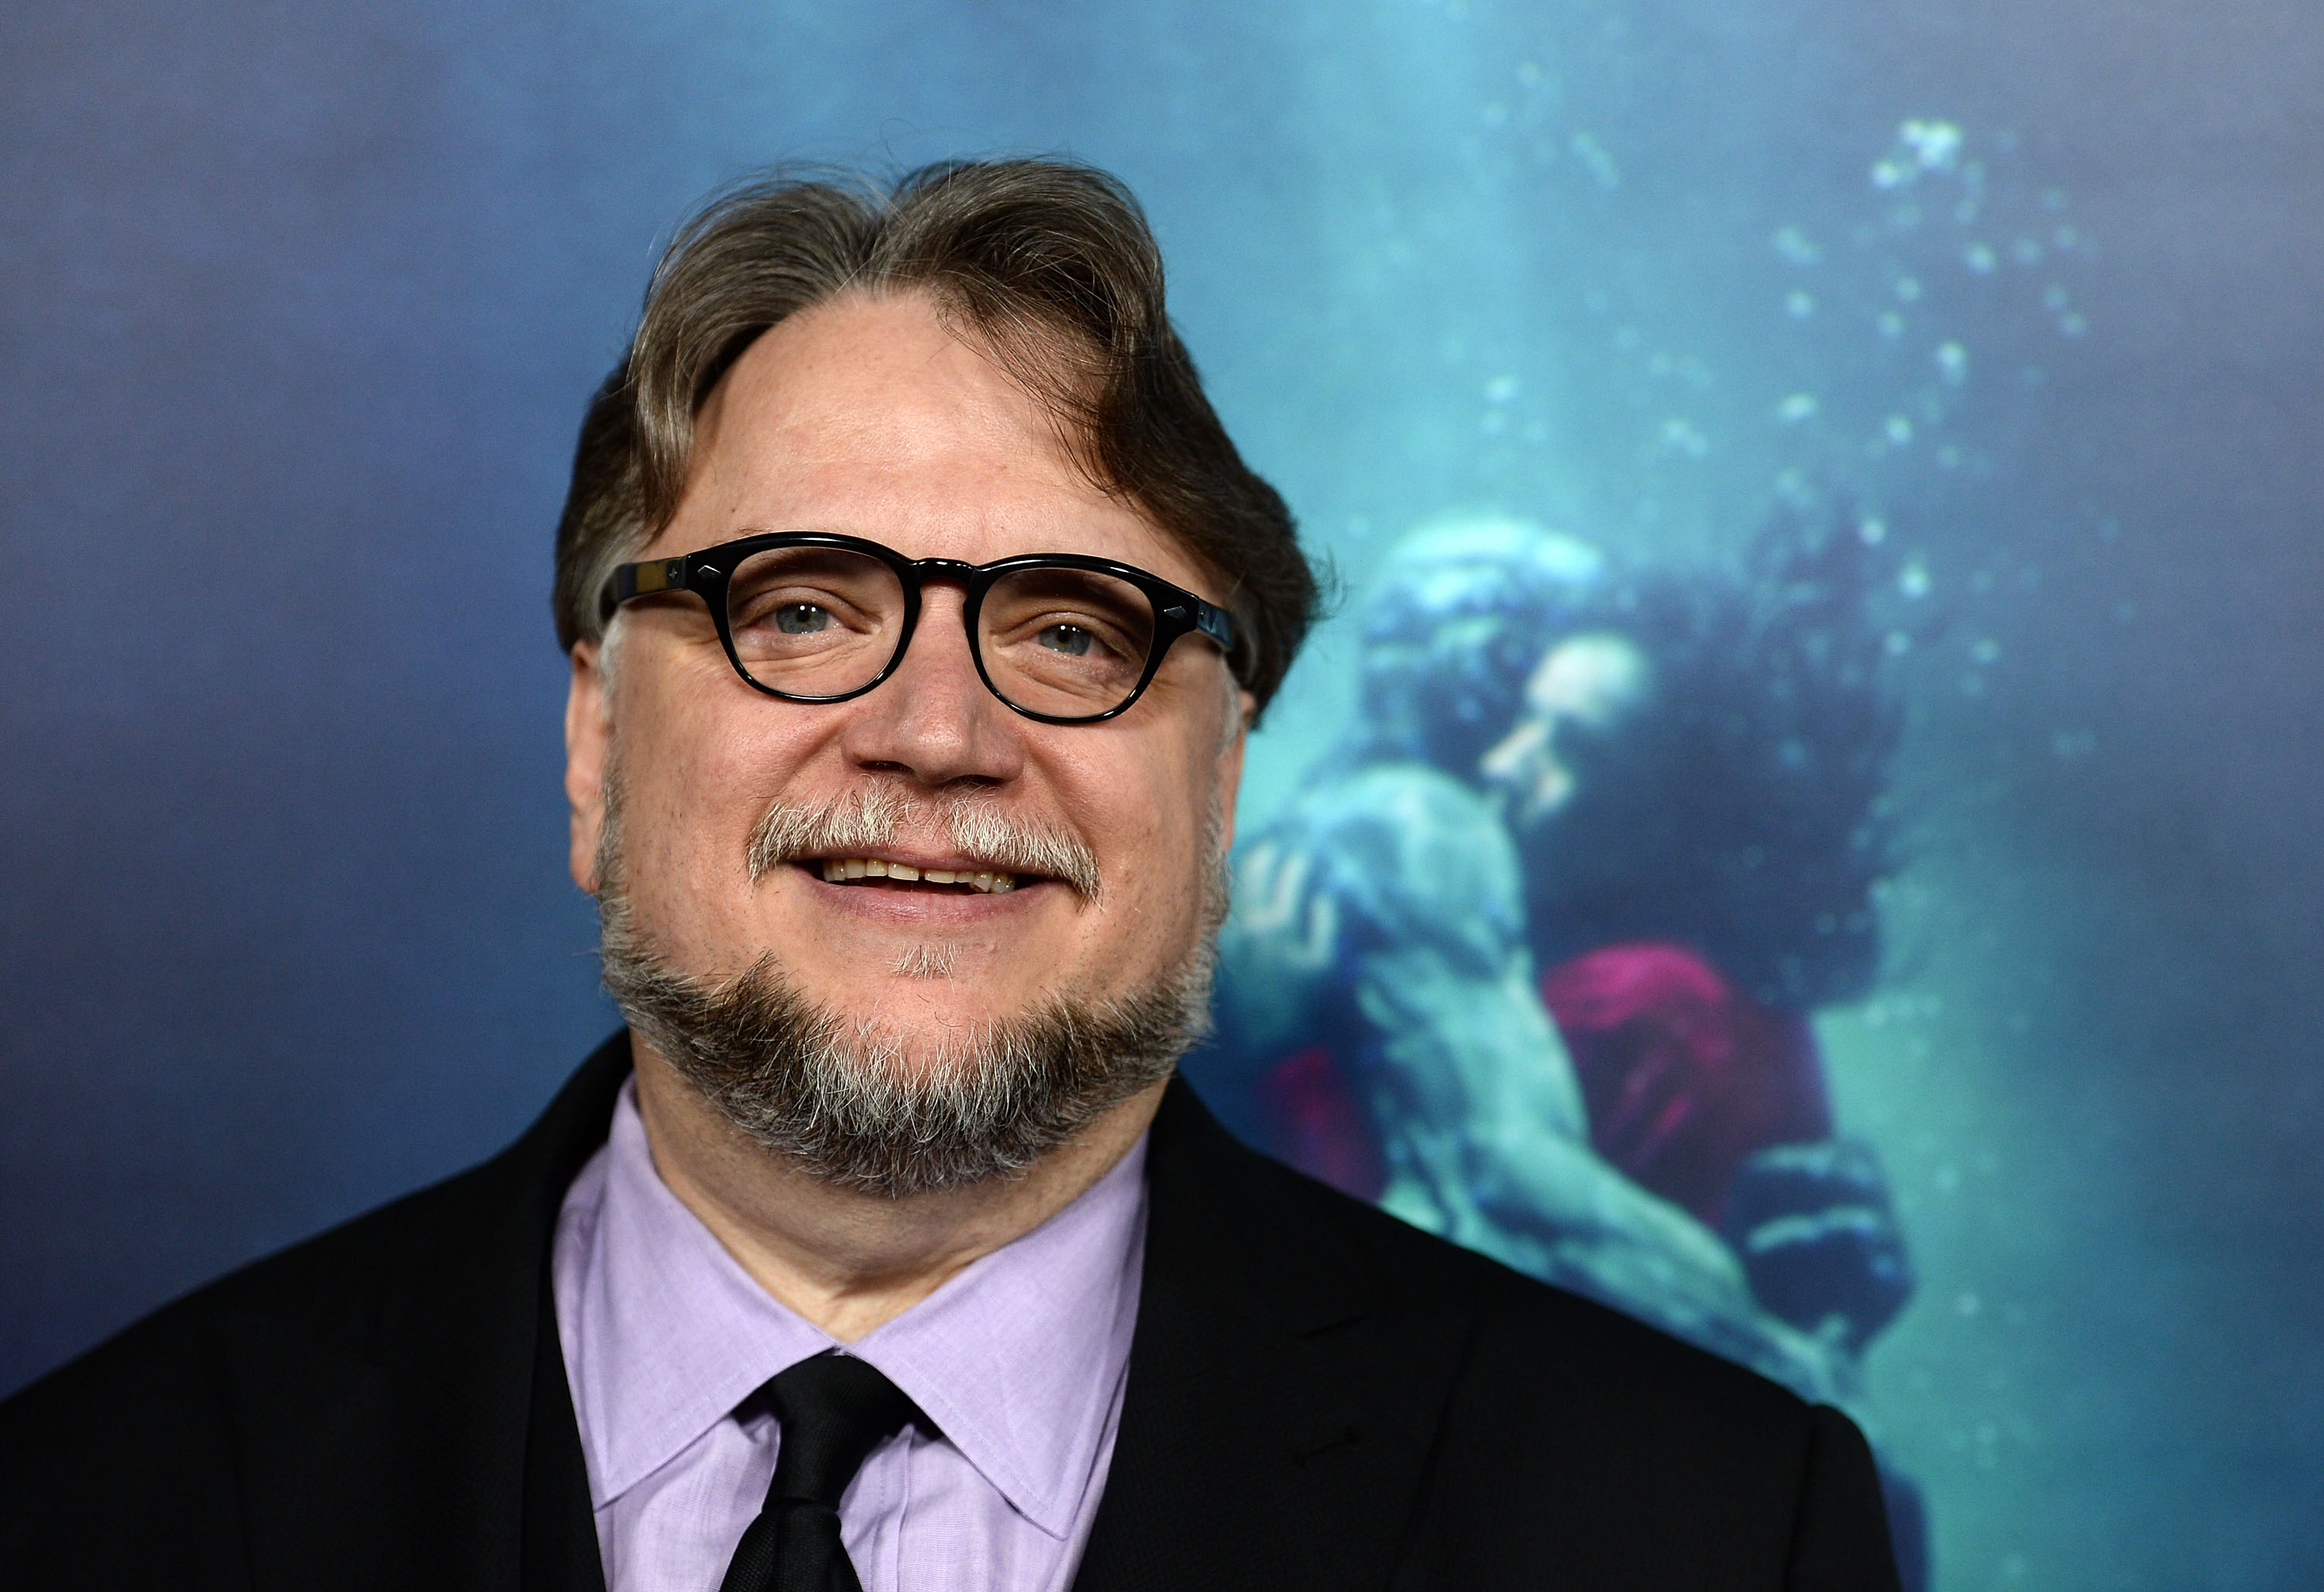 Premiere Of Fox Searchlight Pictures' 'The Shape Of Water' - Arrivals